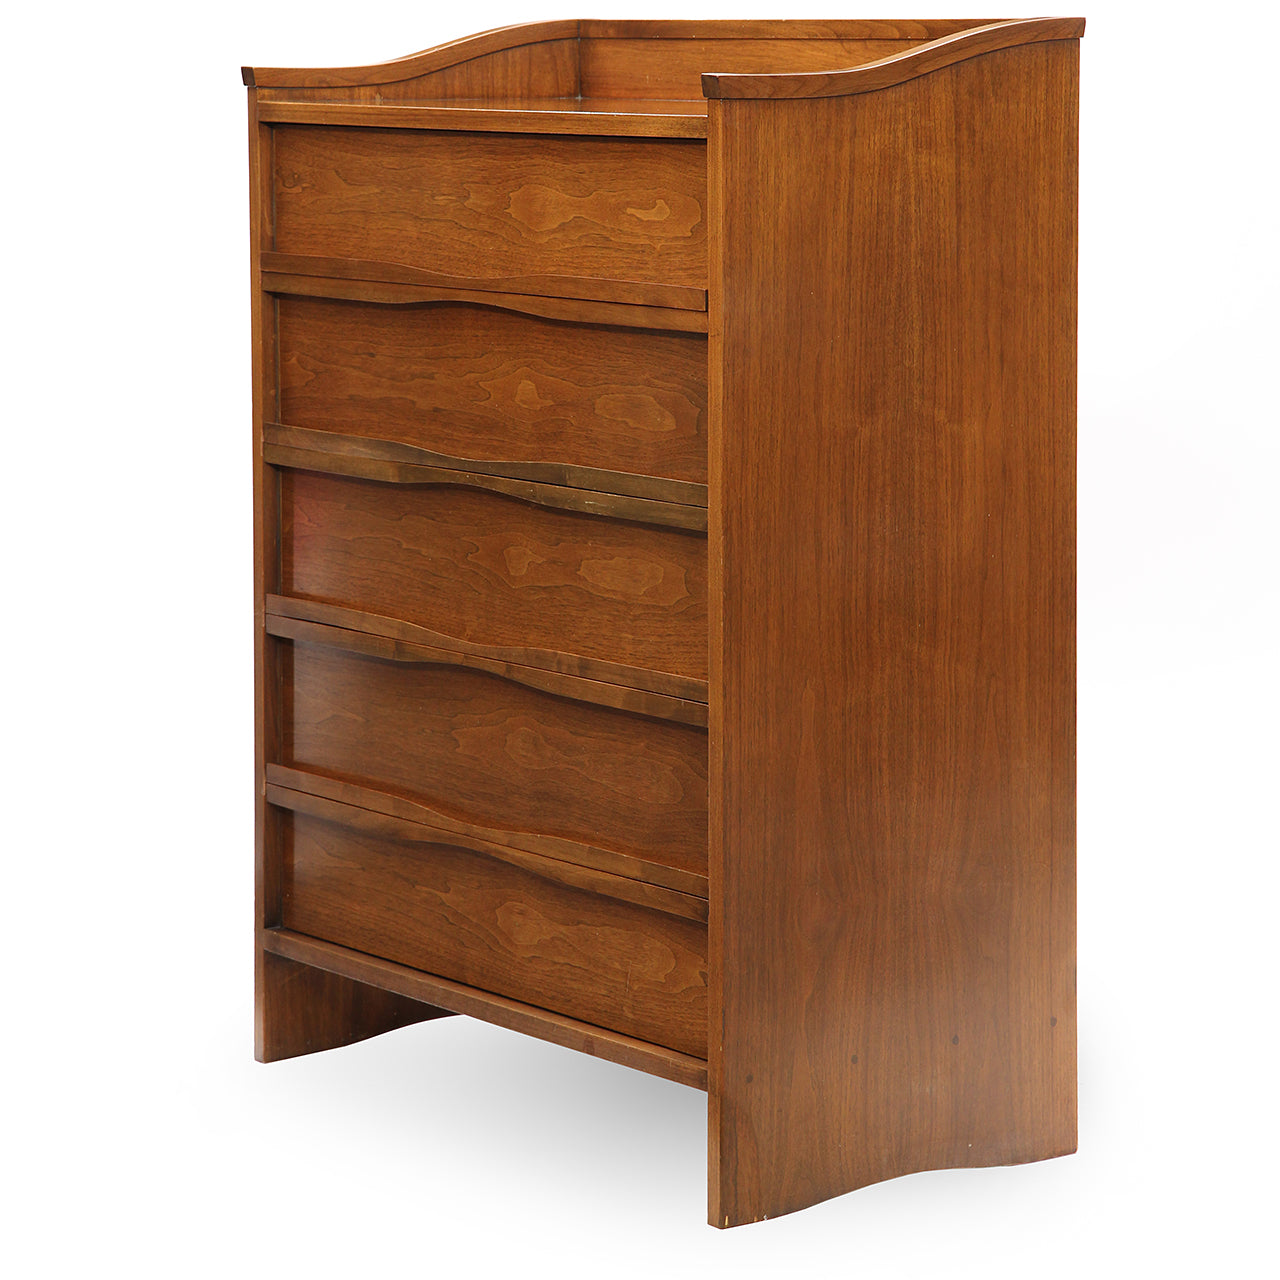 Tall Chest of Drawers - Storage - George Nakashima WYETH